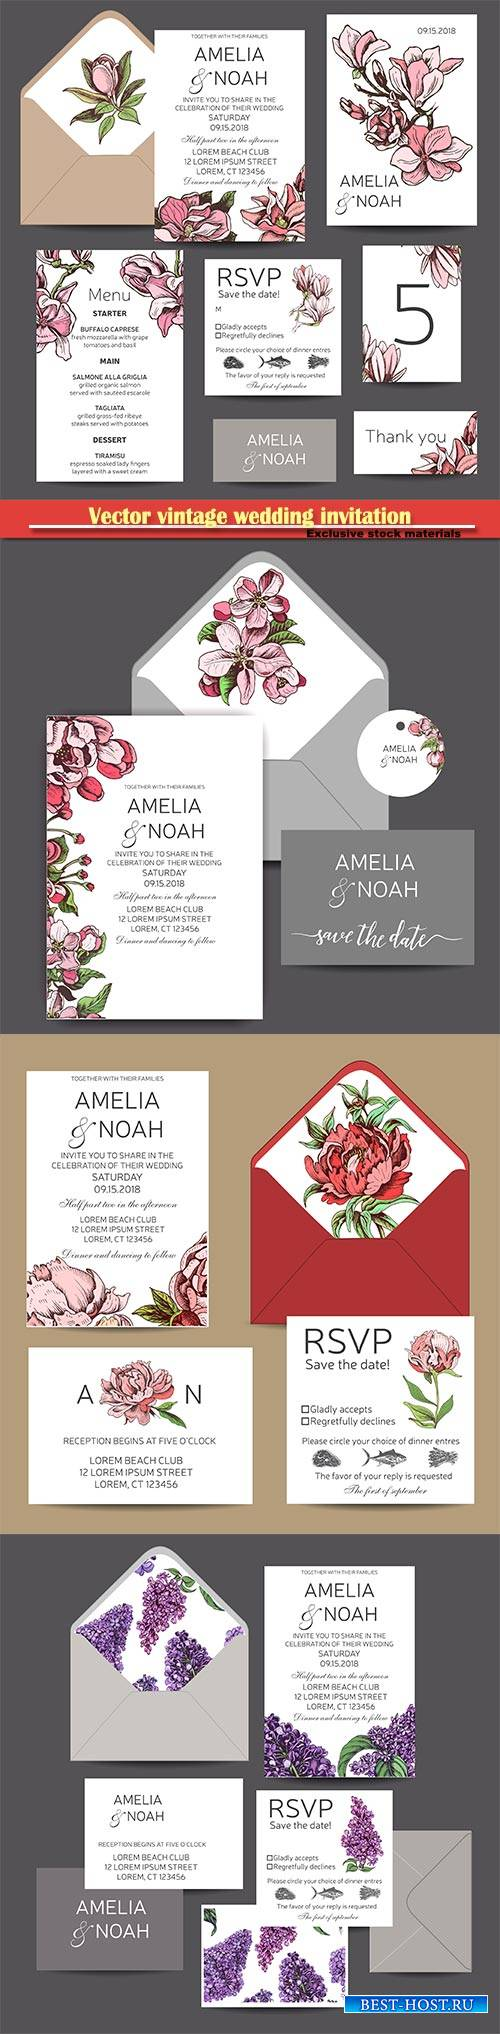 Vector vintage wedding invitation, watercolor flower